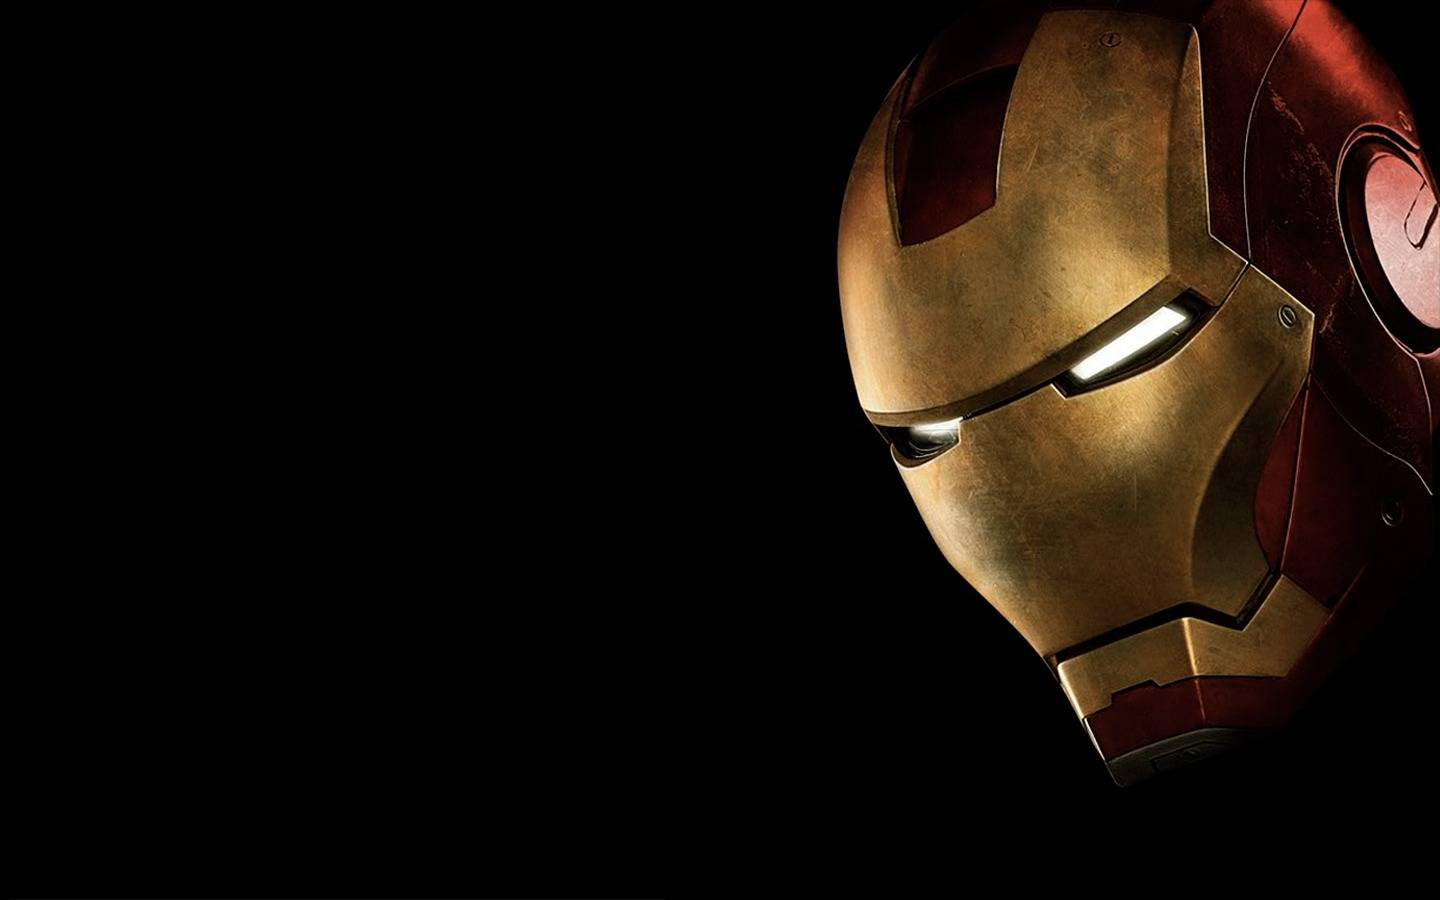 iron man hd wallpapers 1080p - sf wallpaper